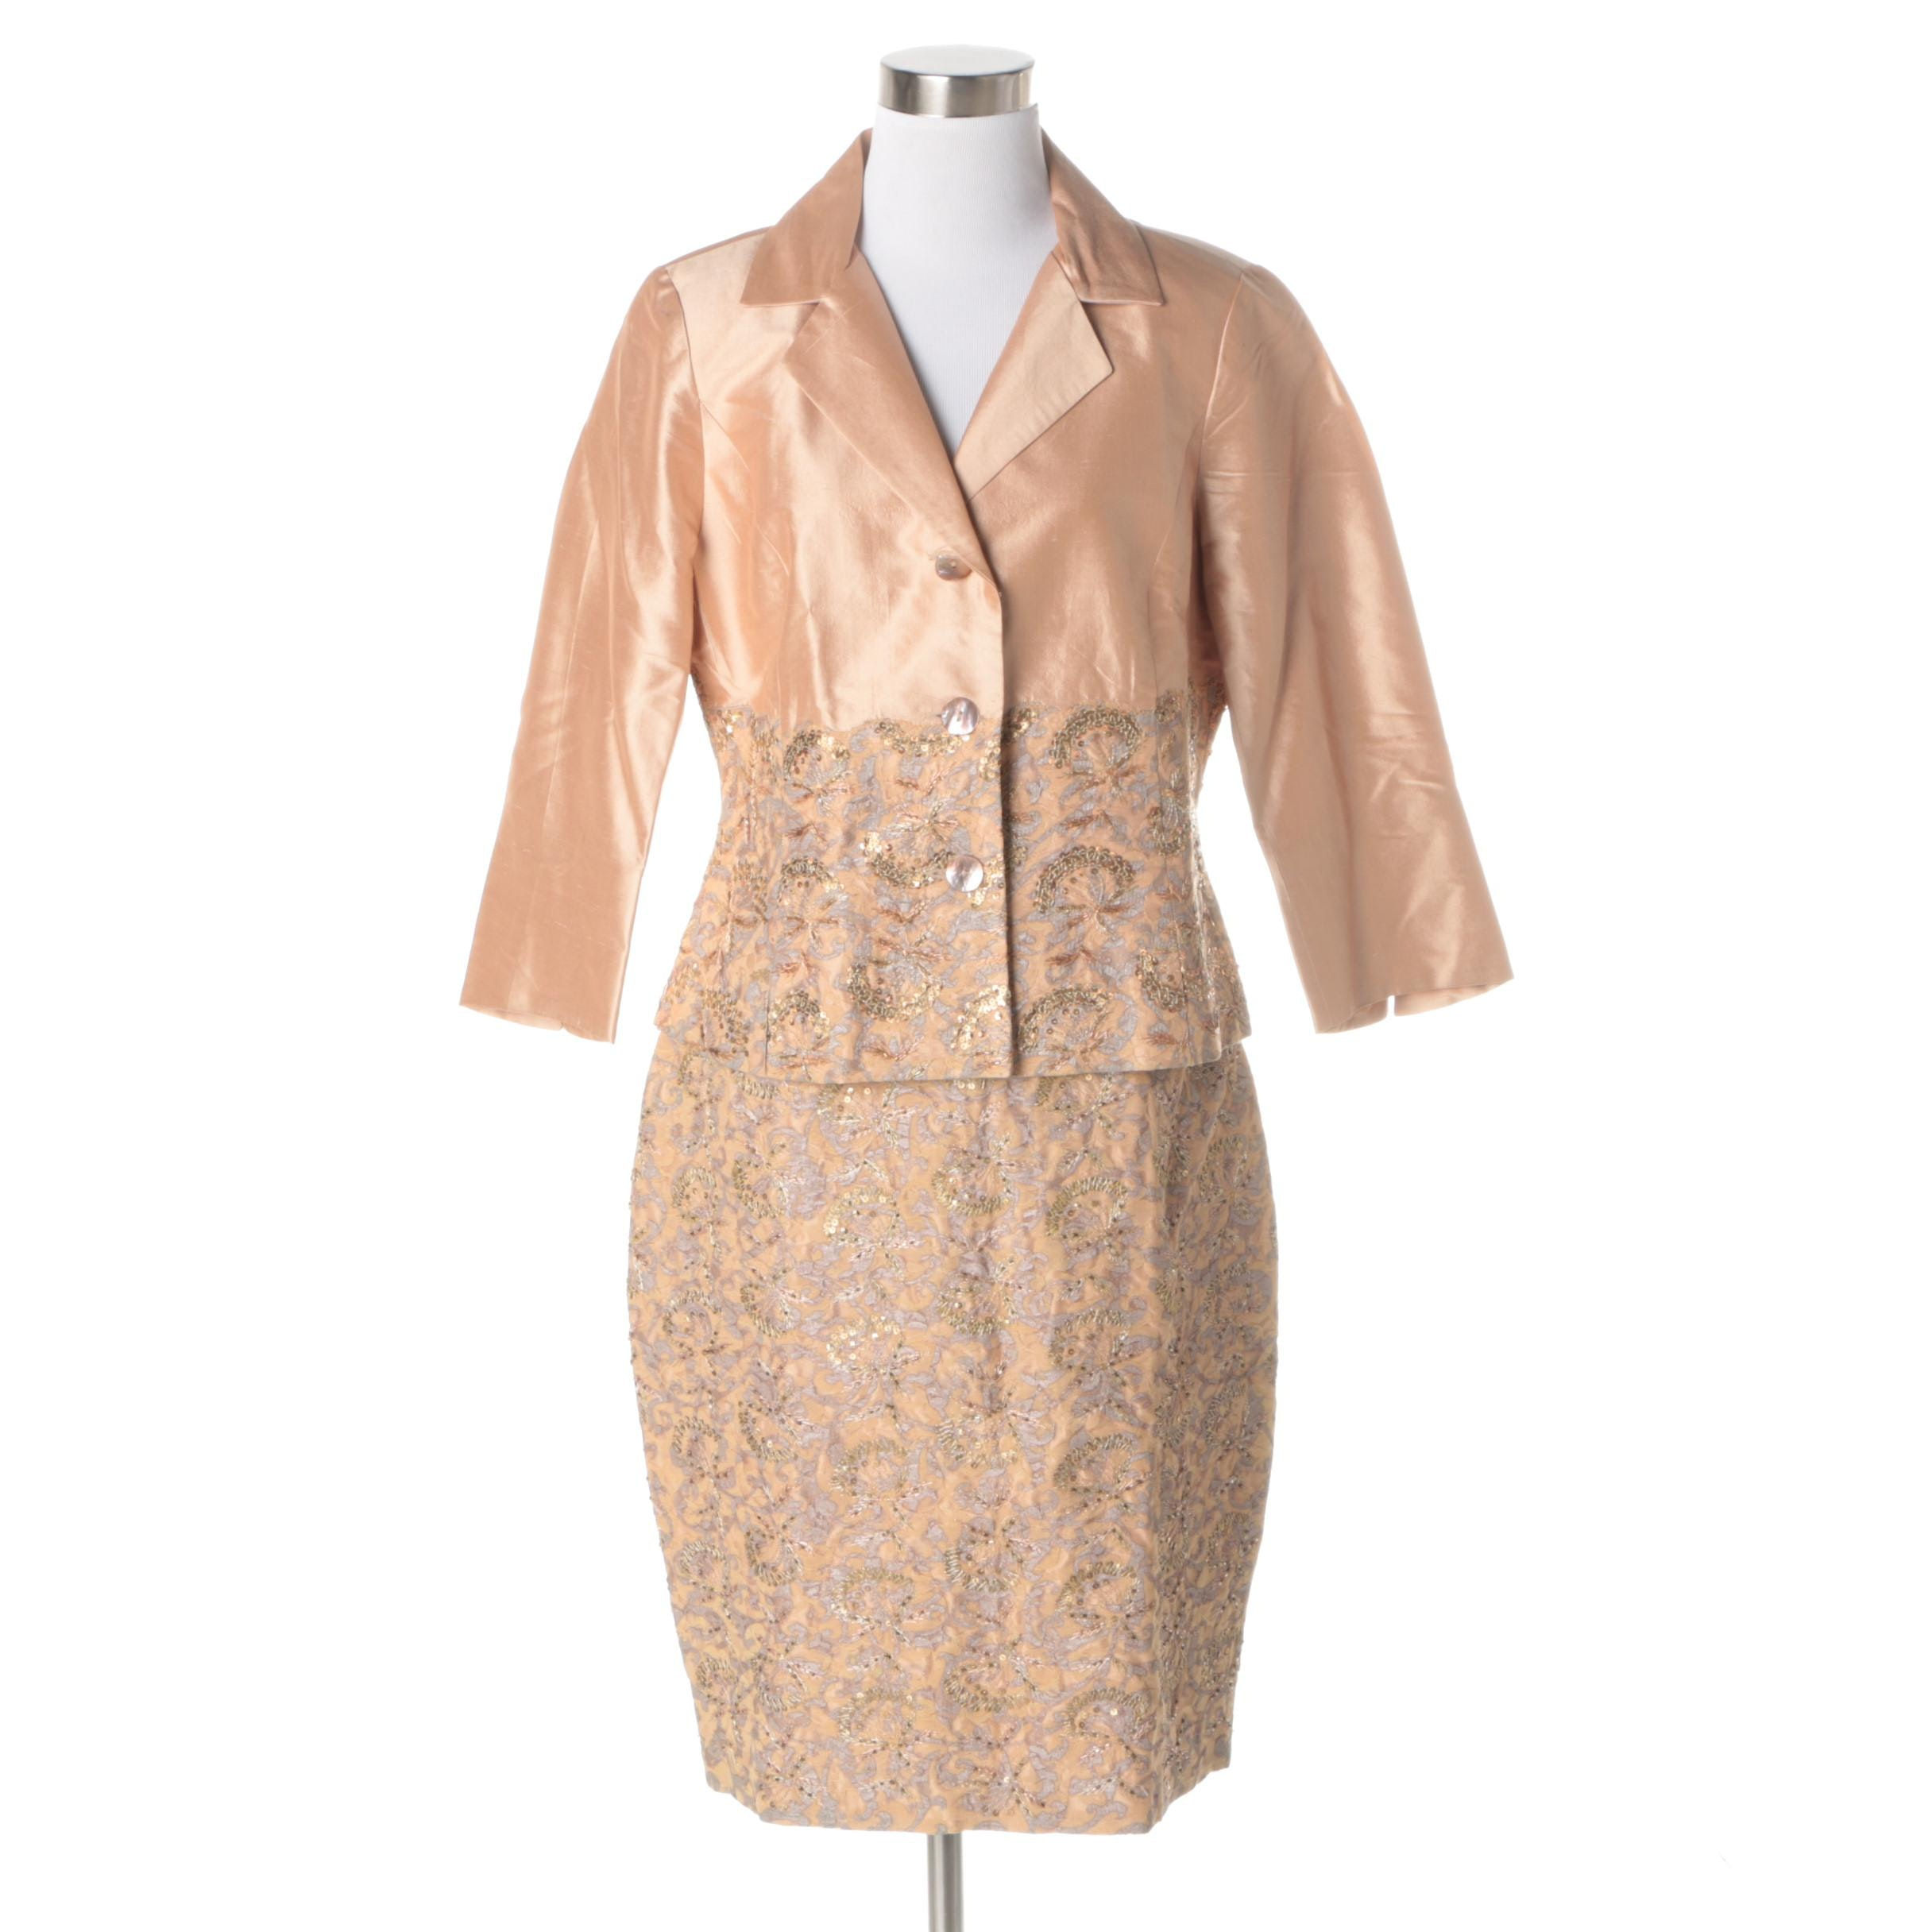 Renato Nucci Peach Skirt Suit